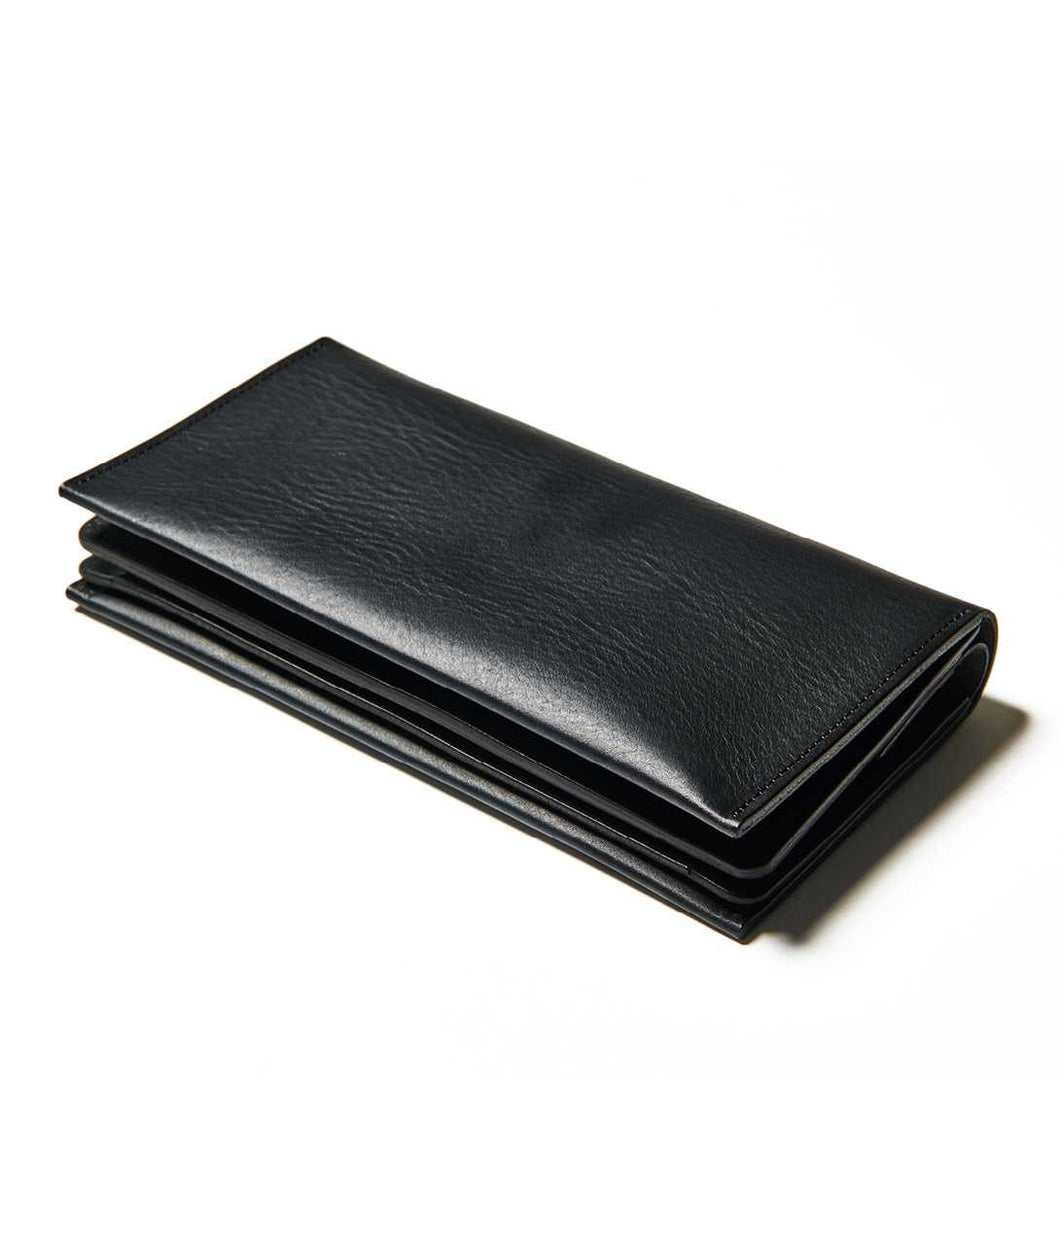 〈LIM DESIGN〉LONG WALLET / ロングウォレット(BLACK)